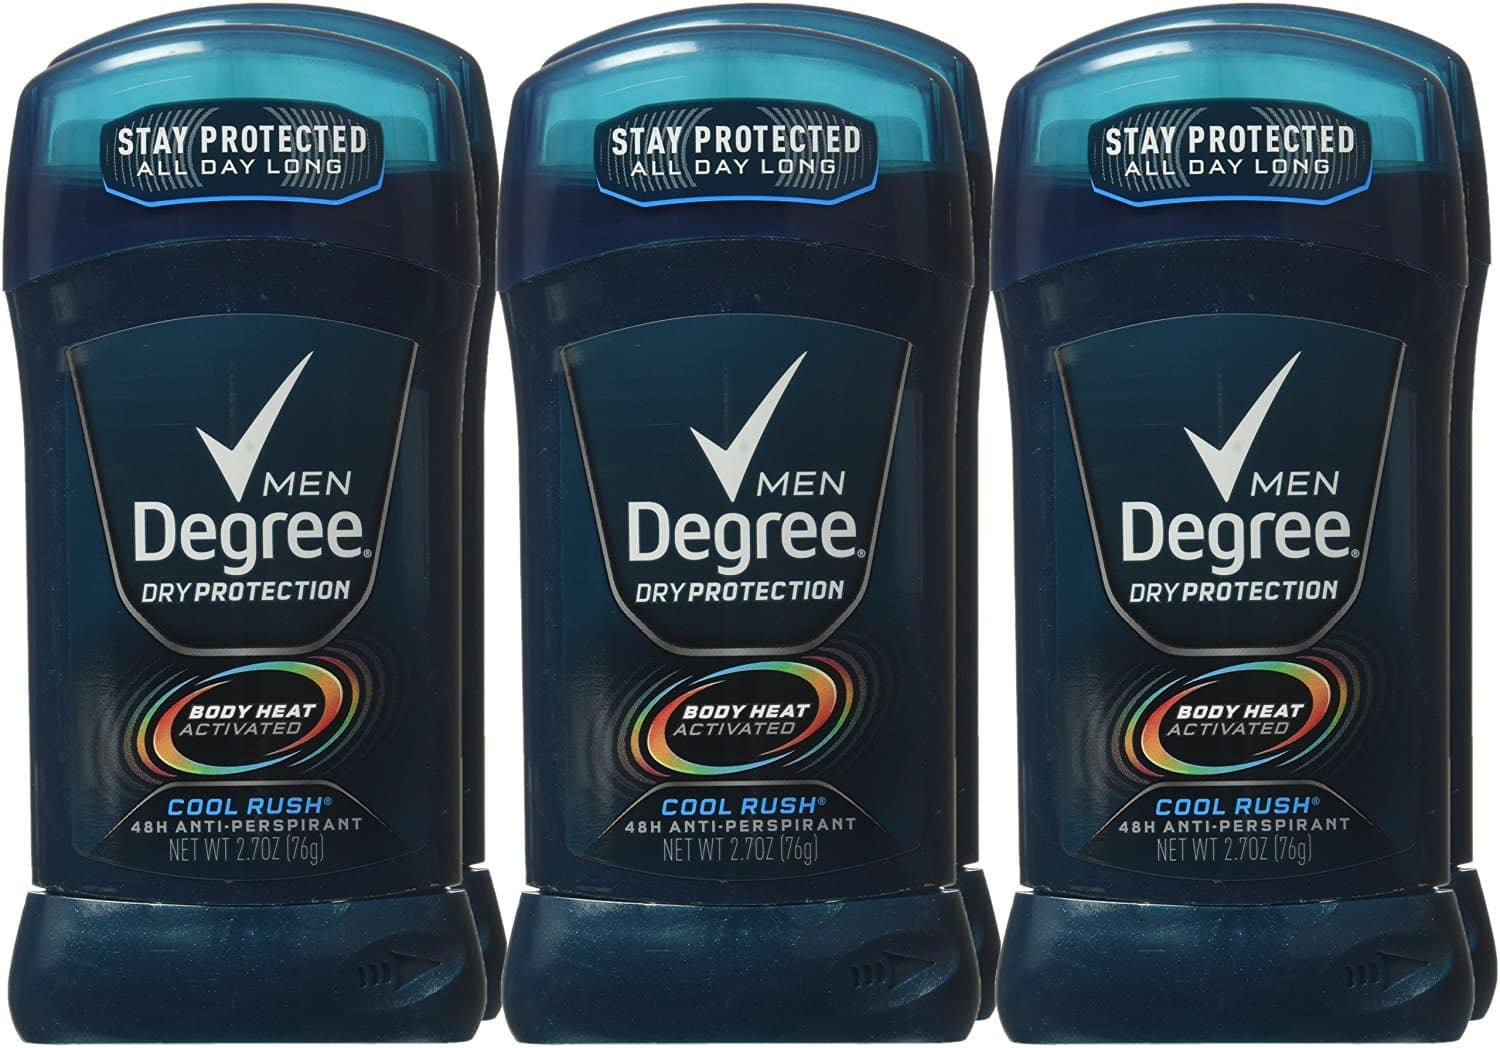 6-Pack Degree Men Dry Protection Antiperspirant in Cool Rush for $9.31 (5% S&S) or less w/ 15% & AC + free ship